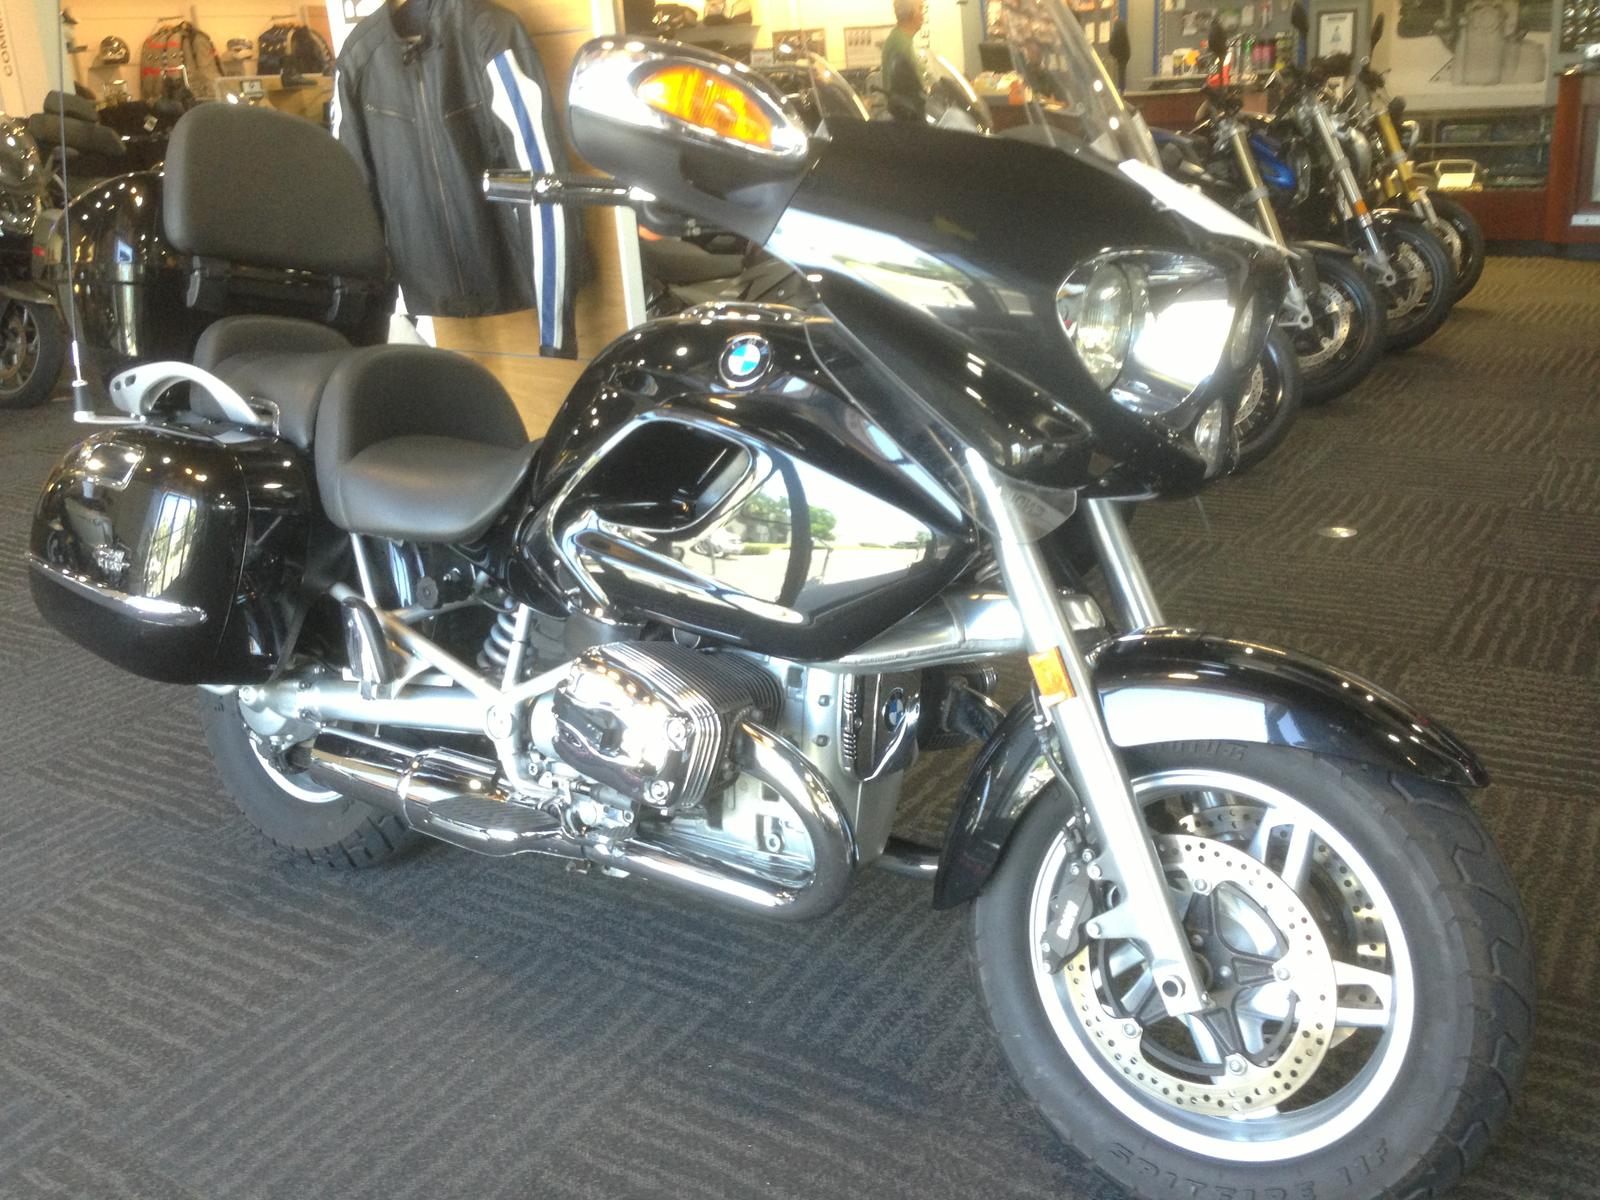 2004 BMW R 1200 CL, motorcycle listing